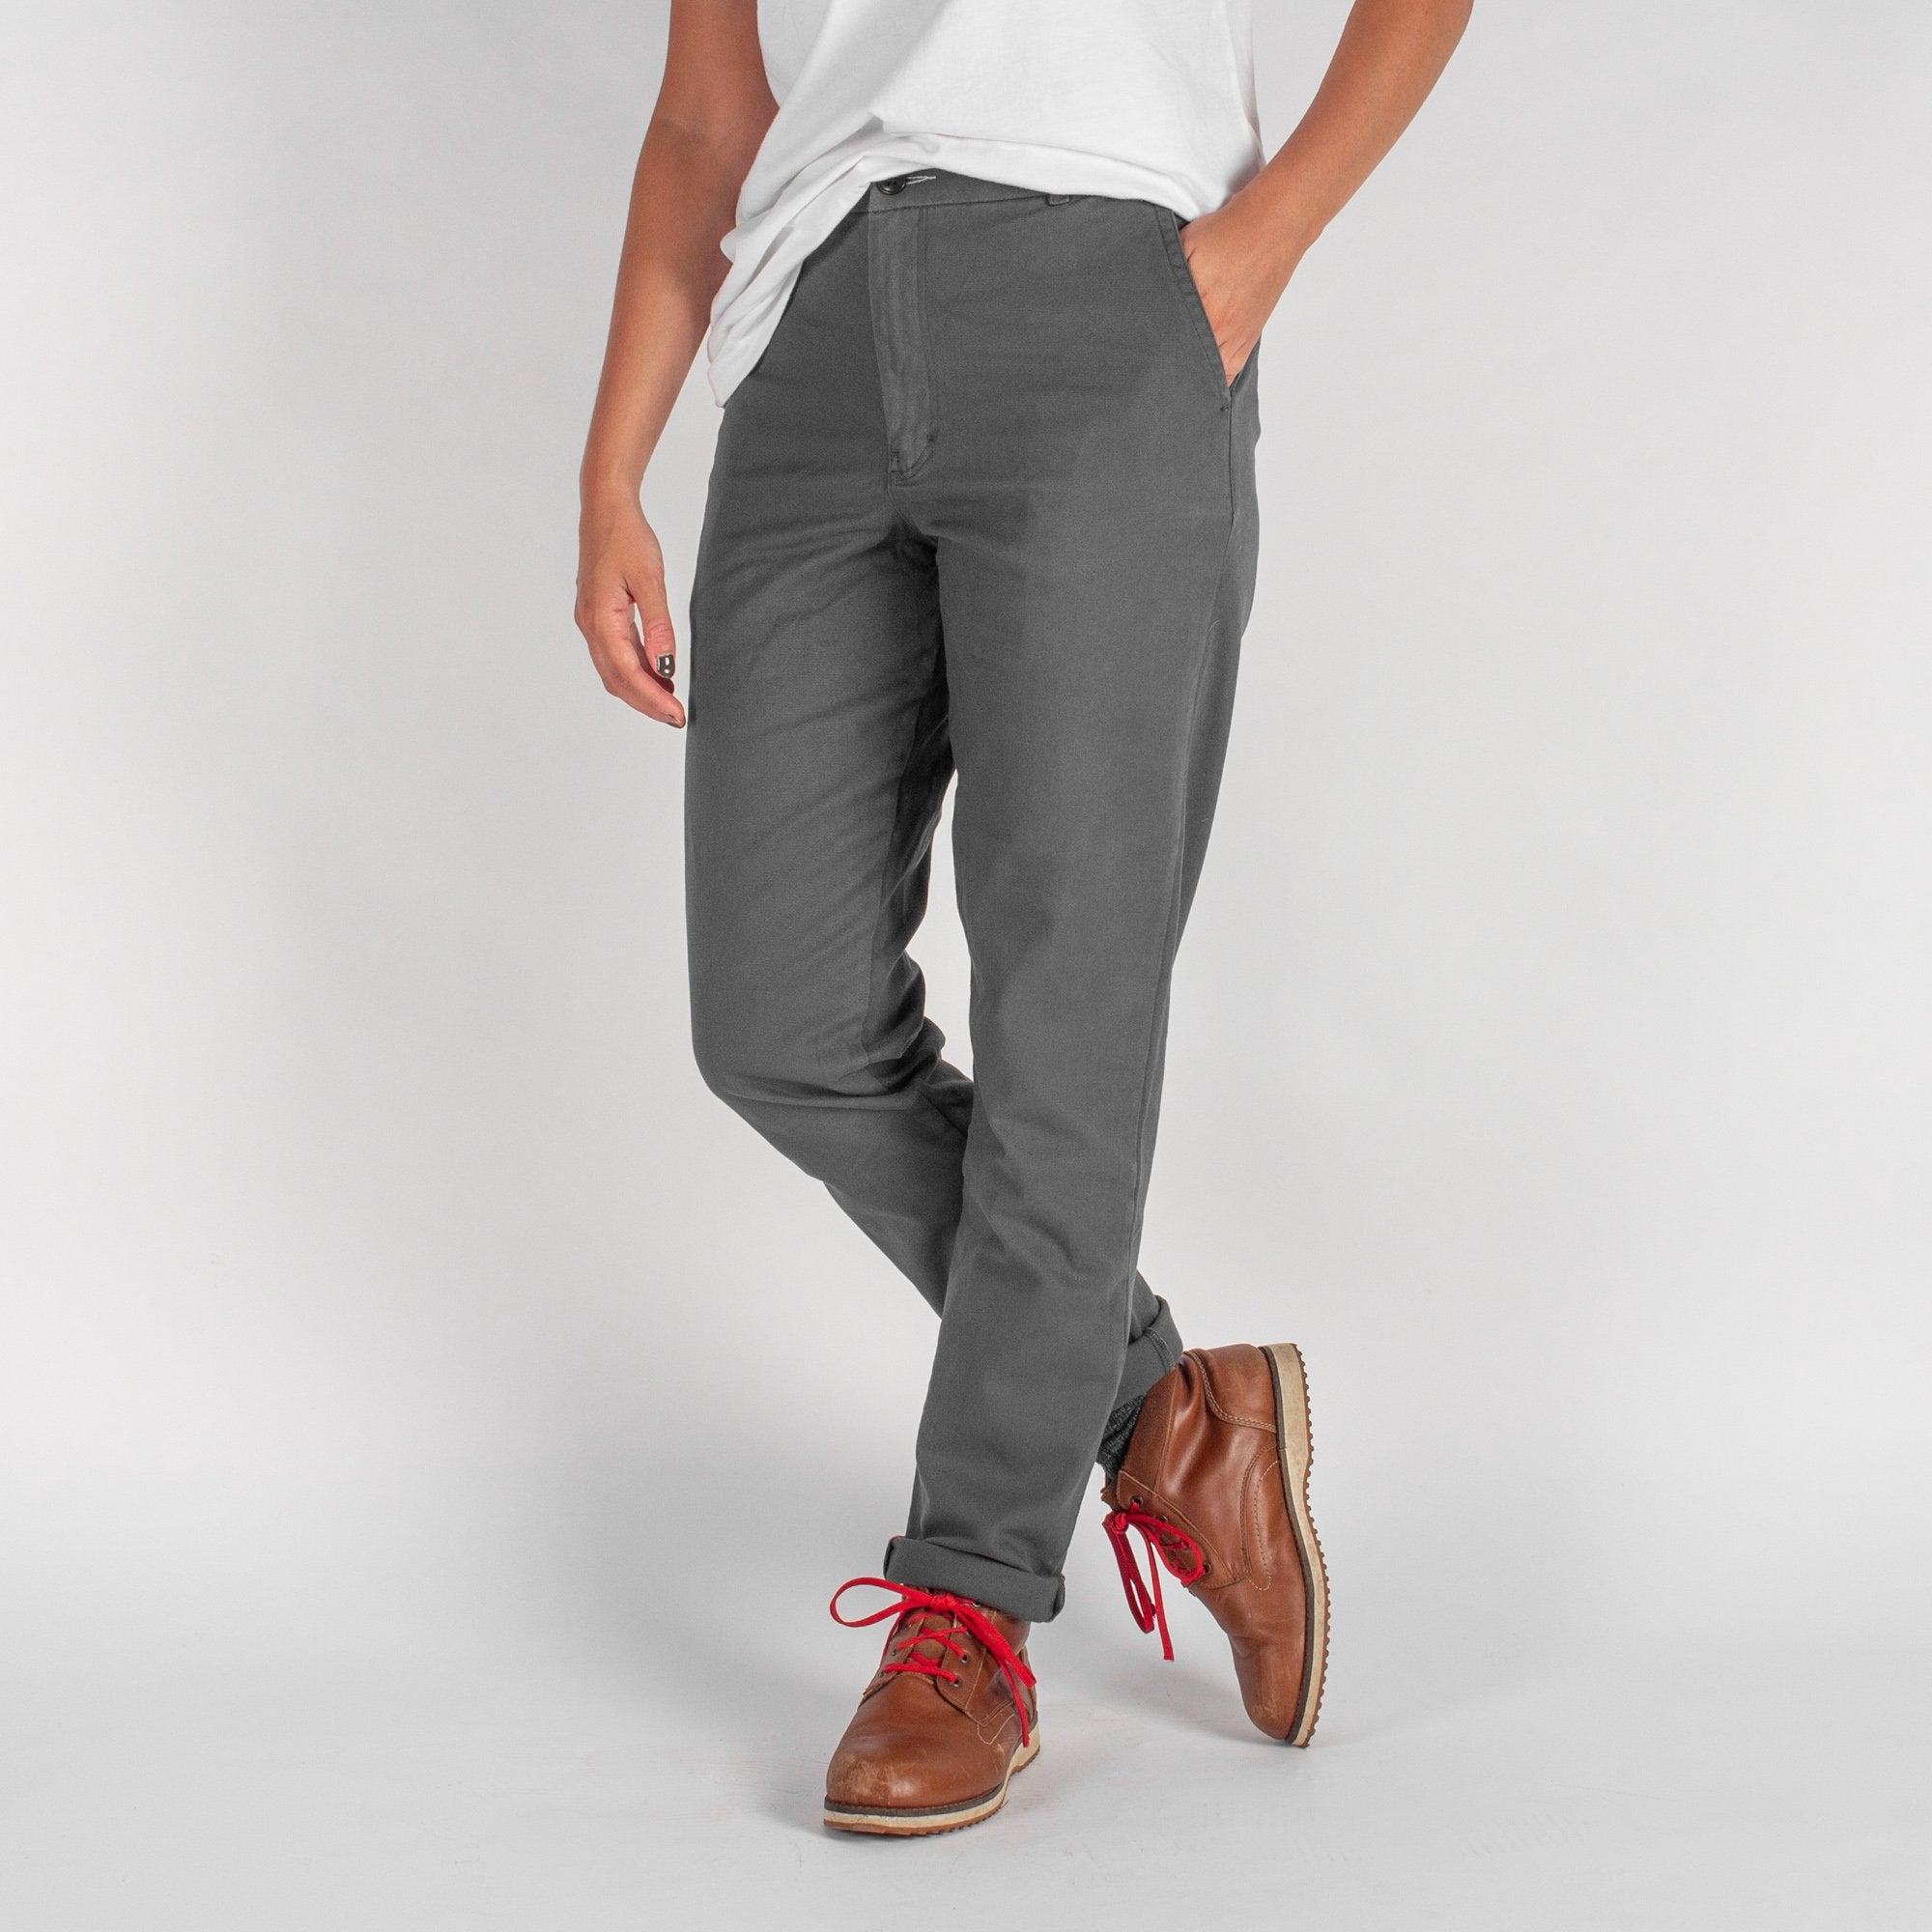 Offtrail Trousers - Grey image 3